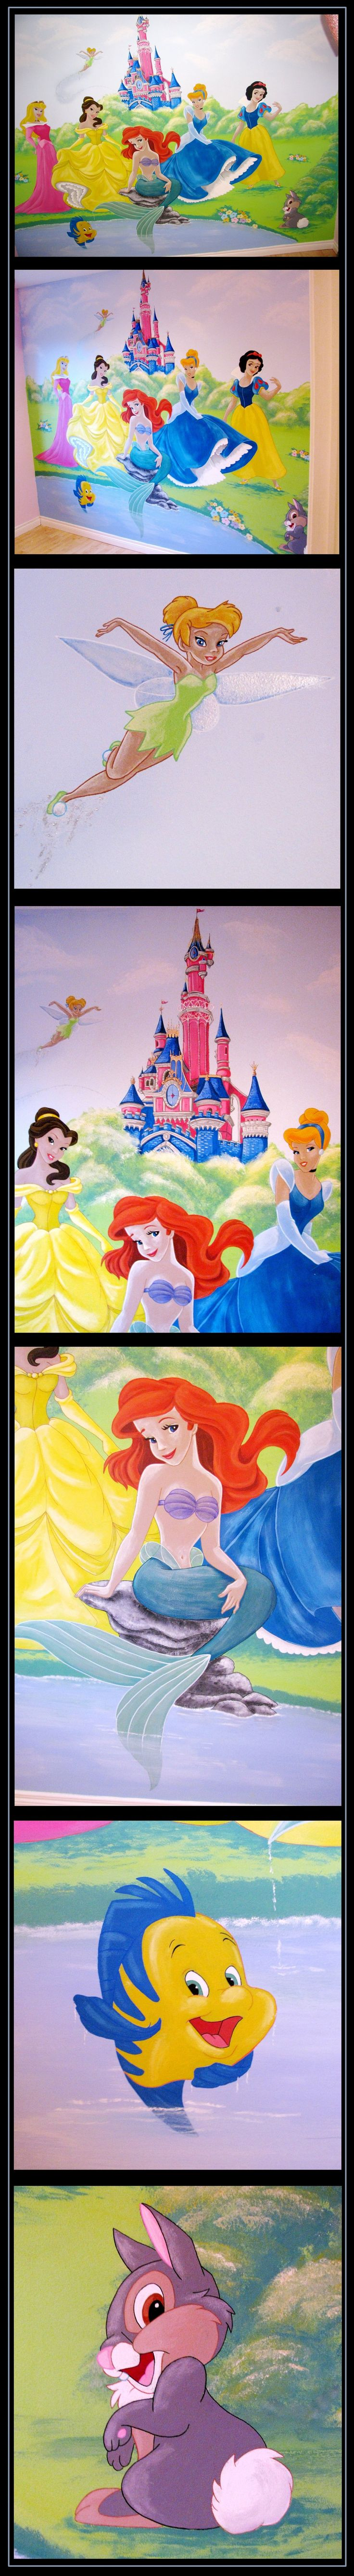 disney princess mural - commission by nightwing1975.deviantart.com on @deviantART